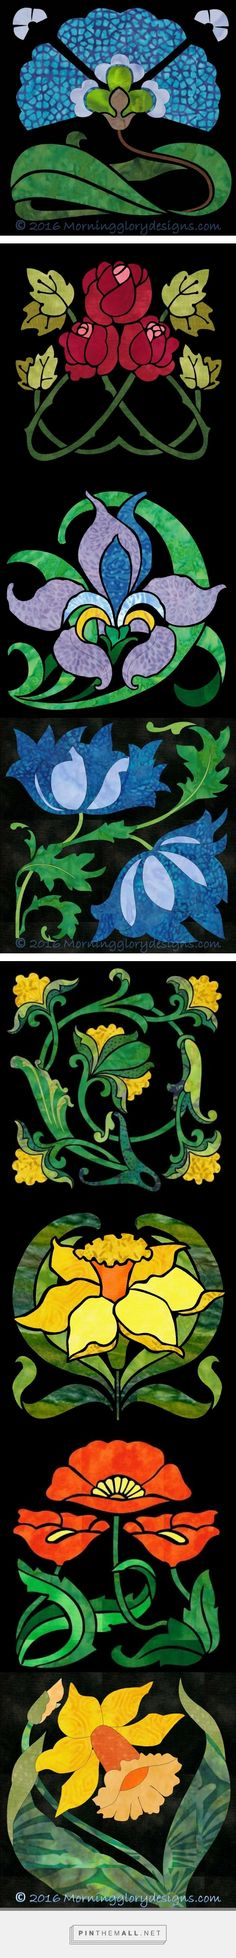 "Morning Glory Designs - Deco Gardens 12"" applique block patterns - these pdf patterns released after completetion of Block of Month quilt pattern - - created via https://pinthemall.net"